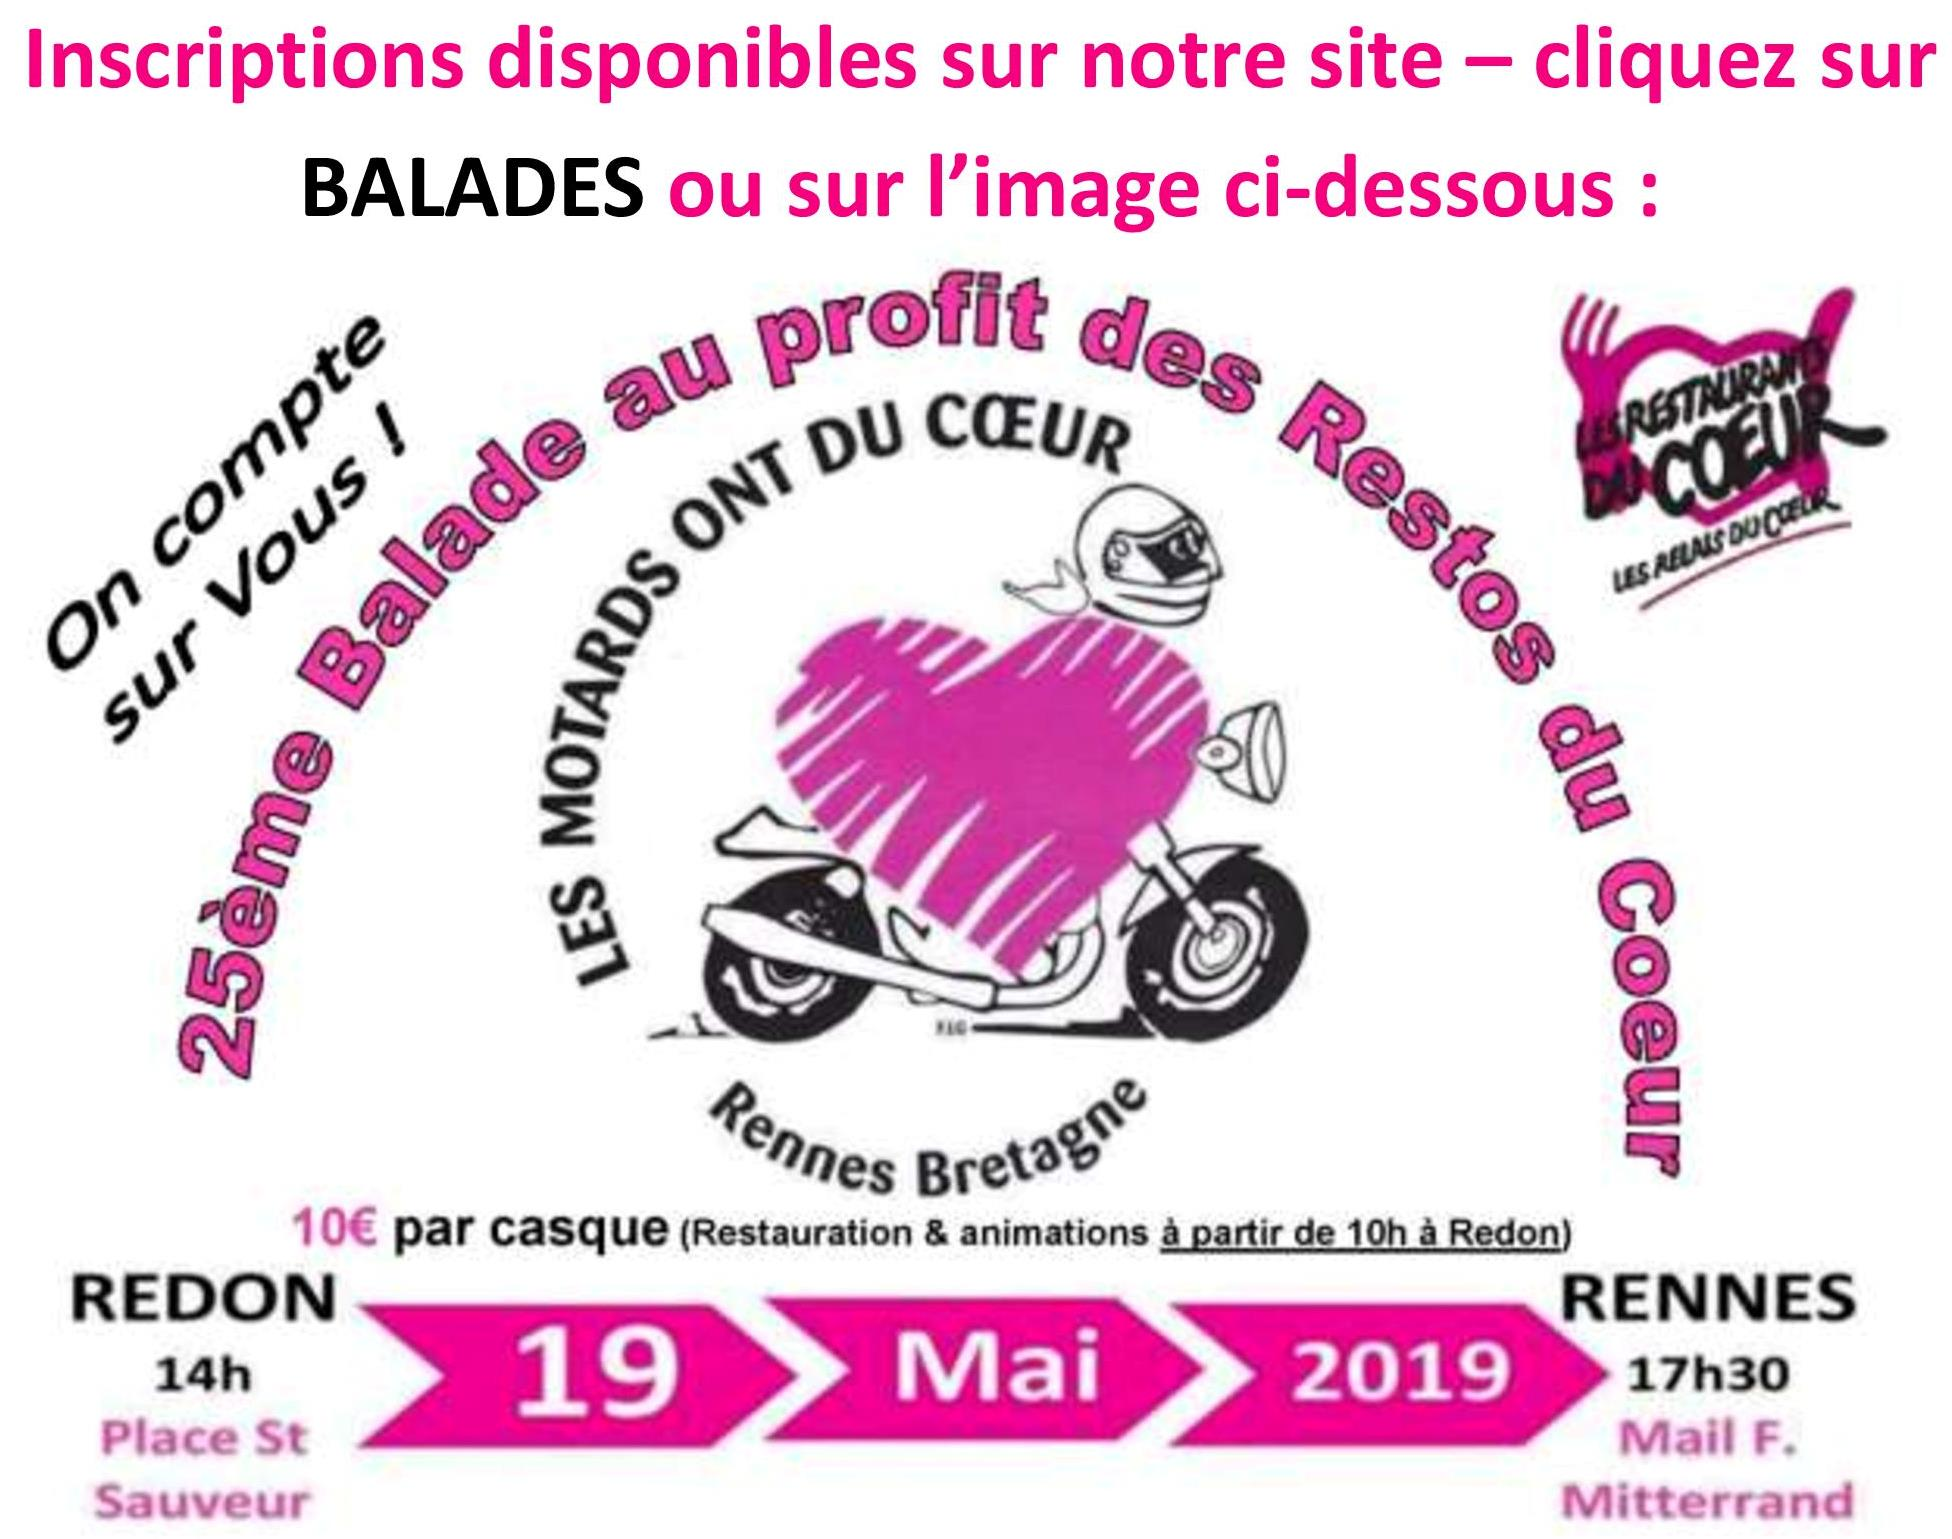 Inscription Balade 19 Mai